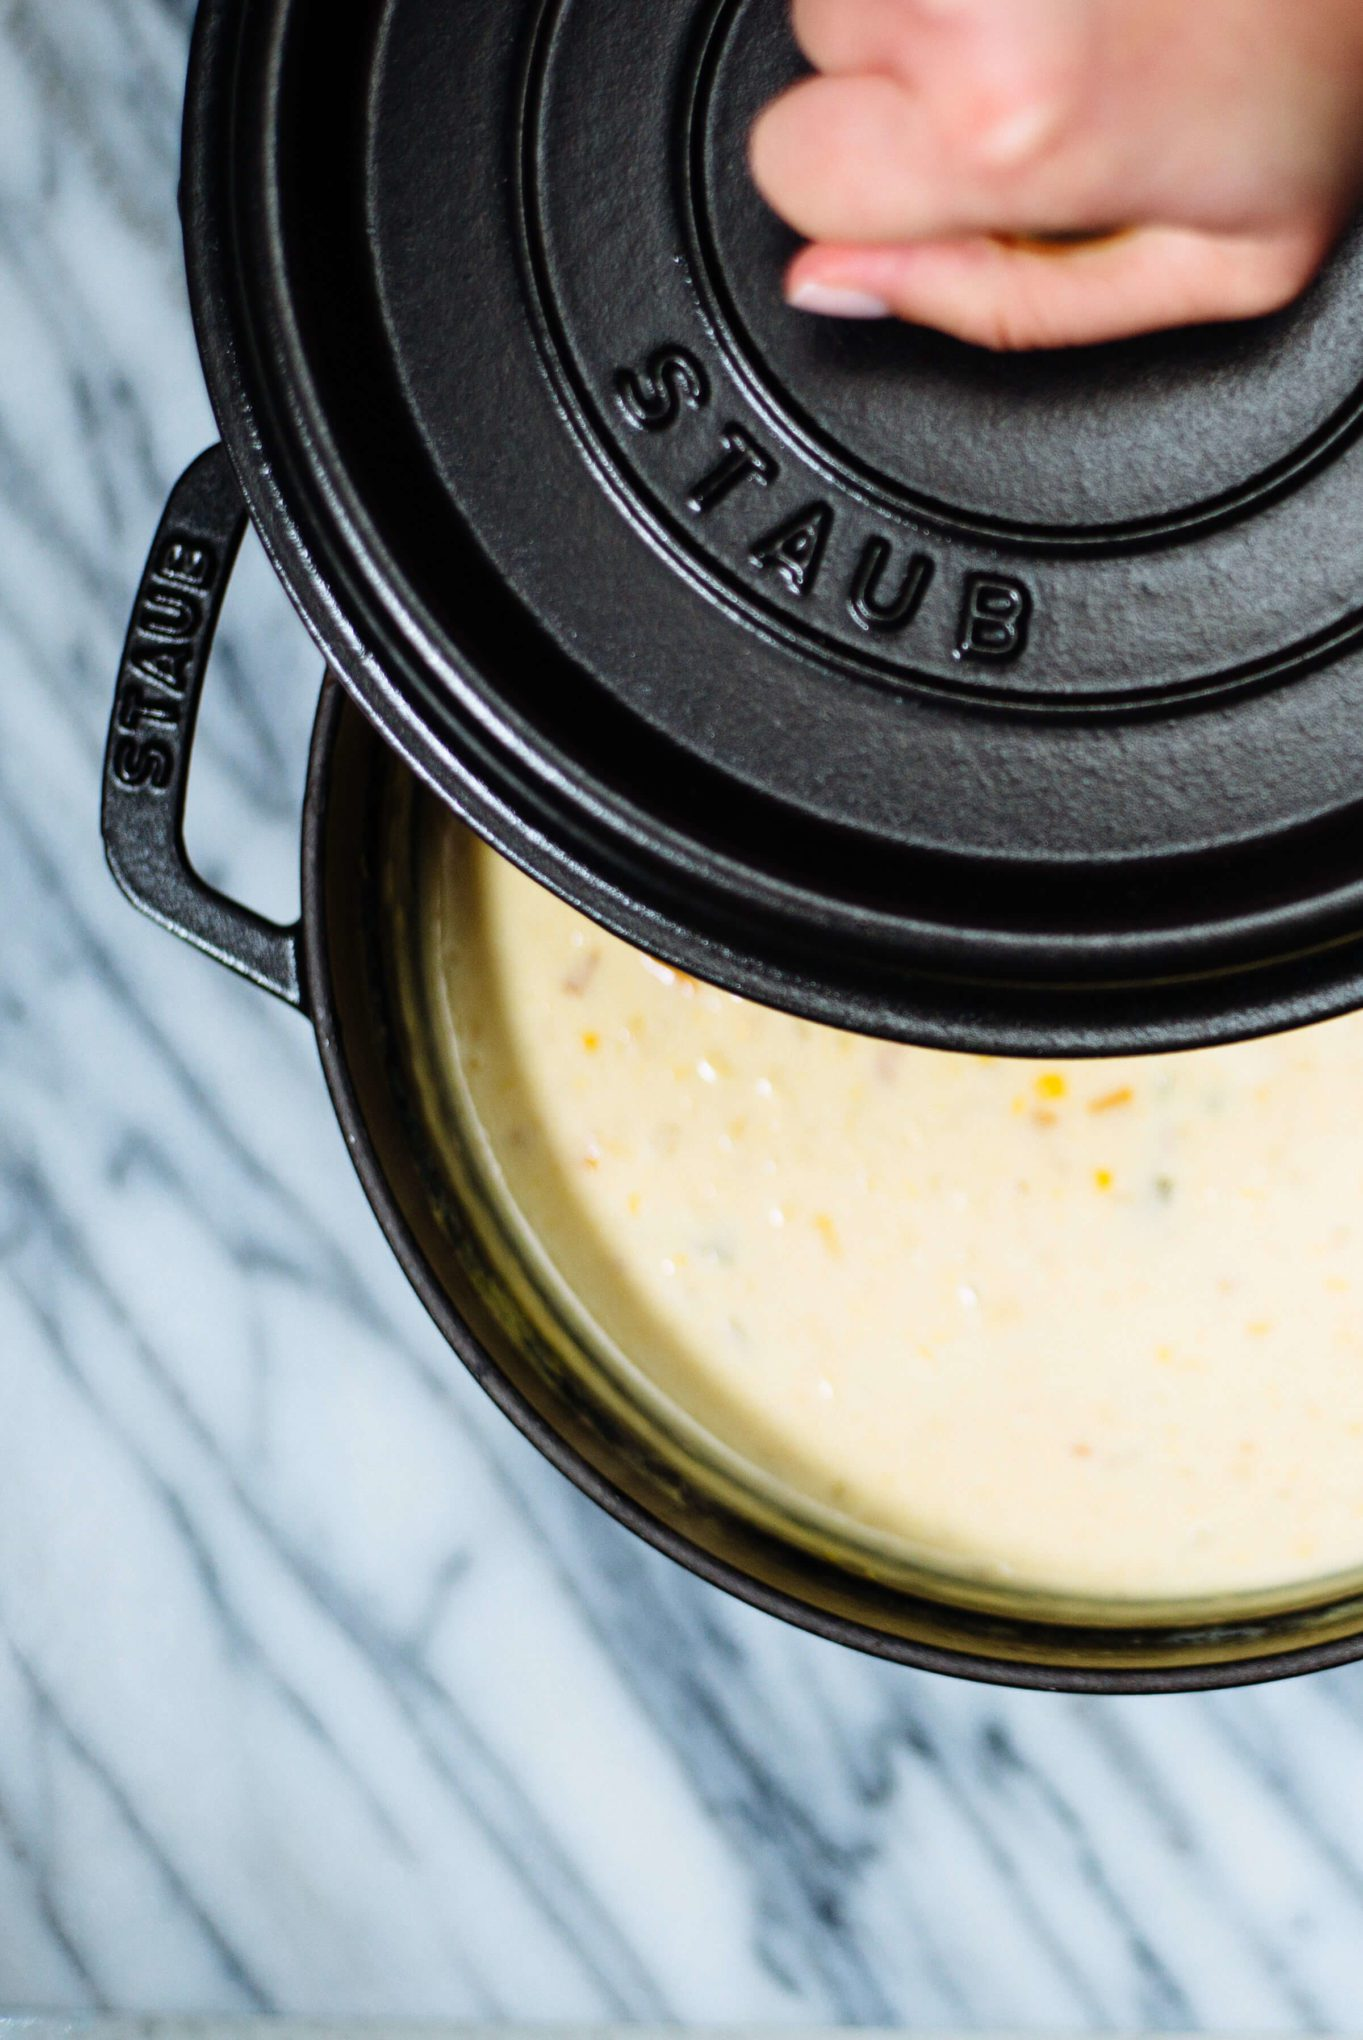 The Taste Edit loves to use their Staub pot to make Spicy Corn Chowder